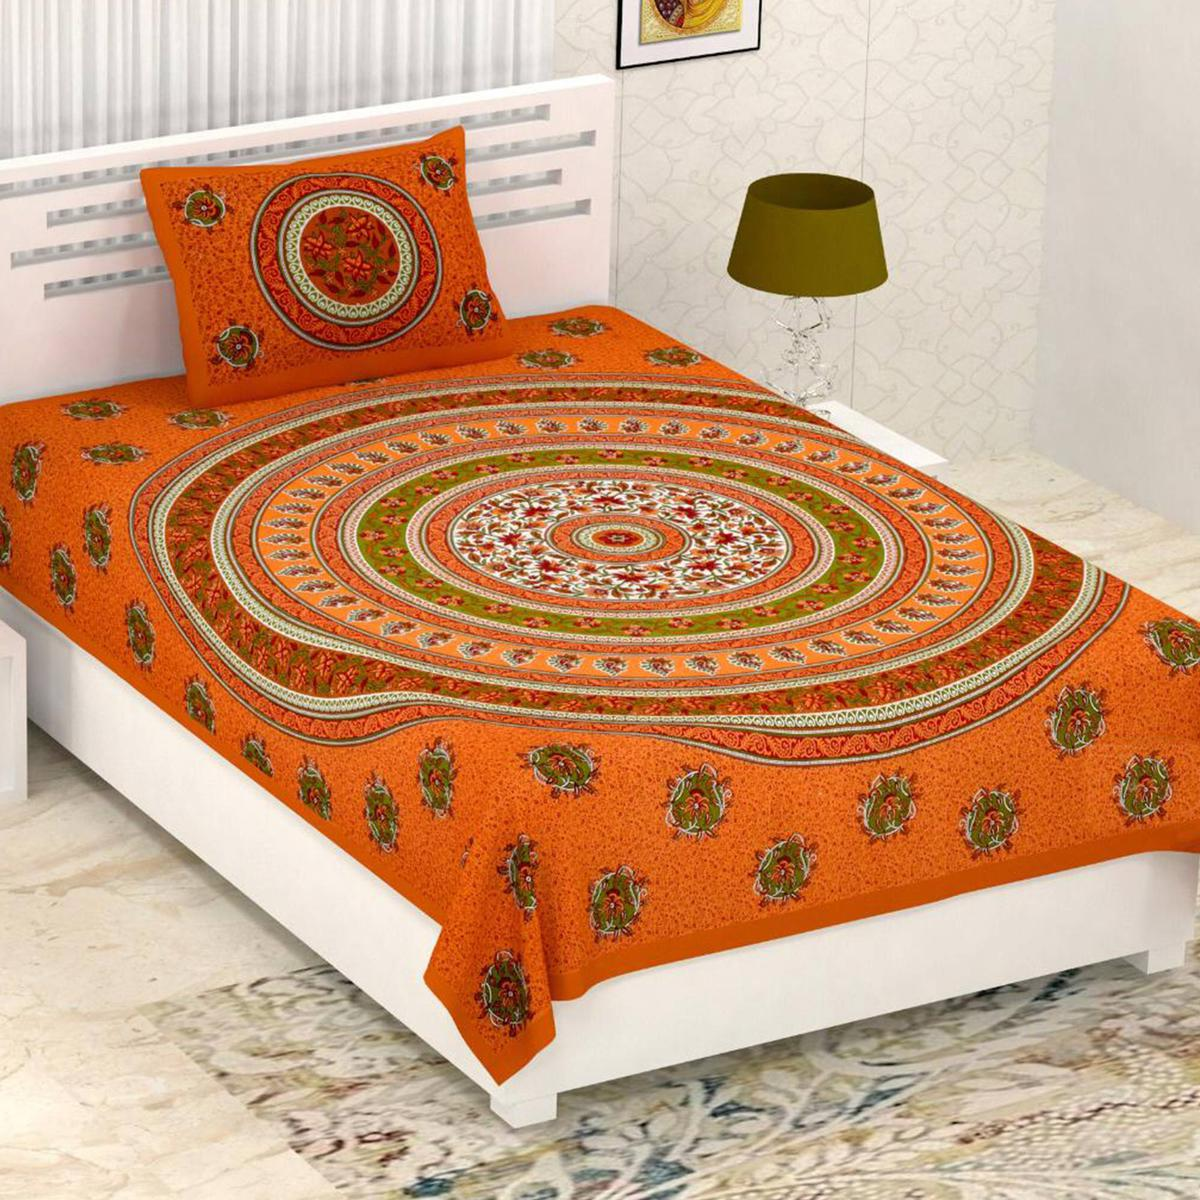 Diva Collection - Orange Colored Printed Cotton Single Bedsheet With Pillow Cover